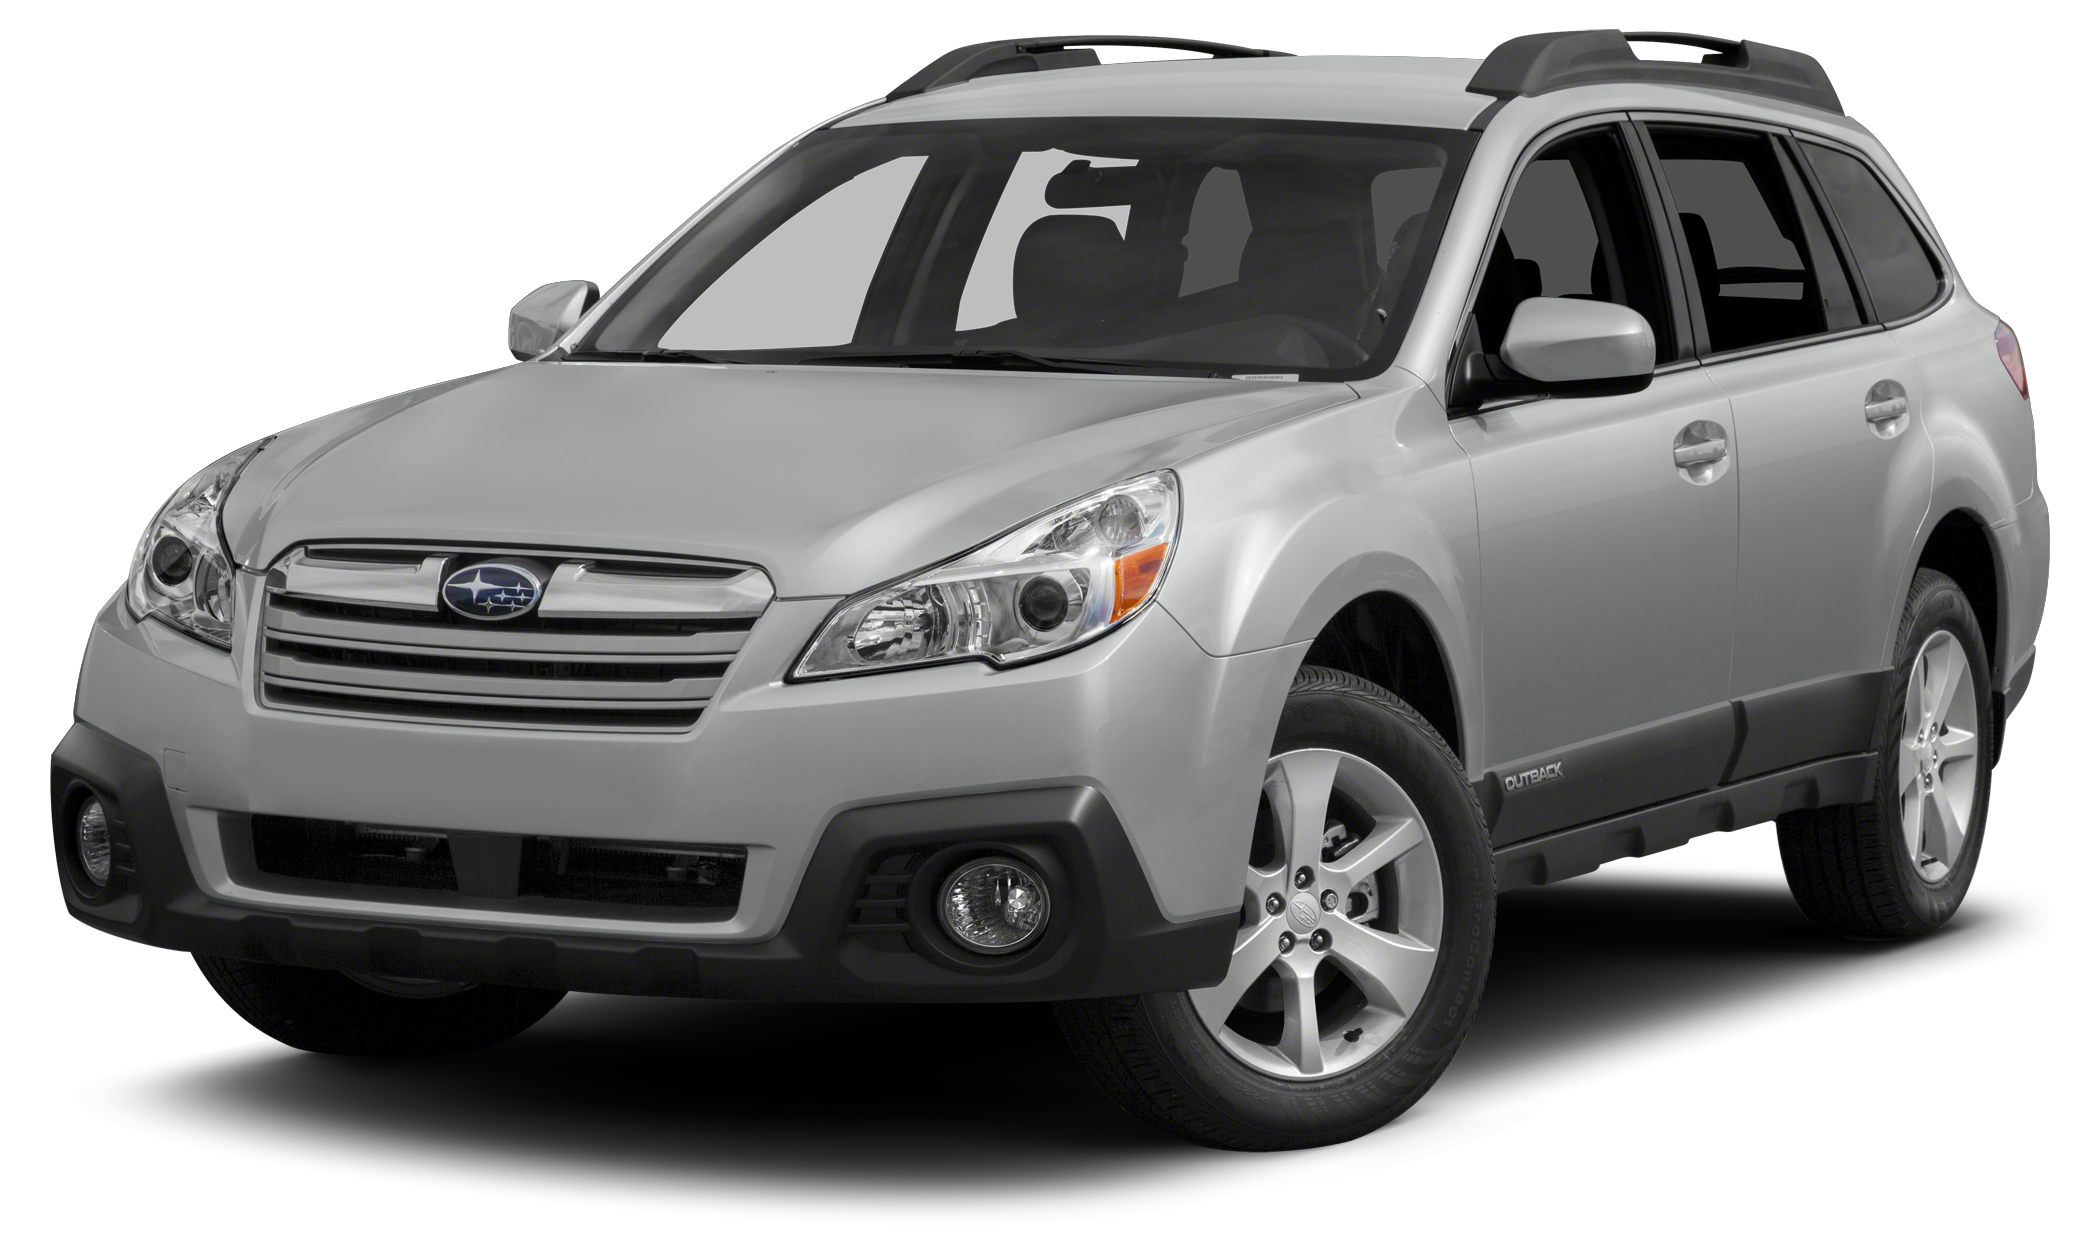 2013 Subaru Outback 36R Limited Recent Arrival Odometer is 13039 miles below market averageAw